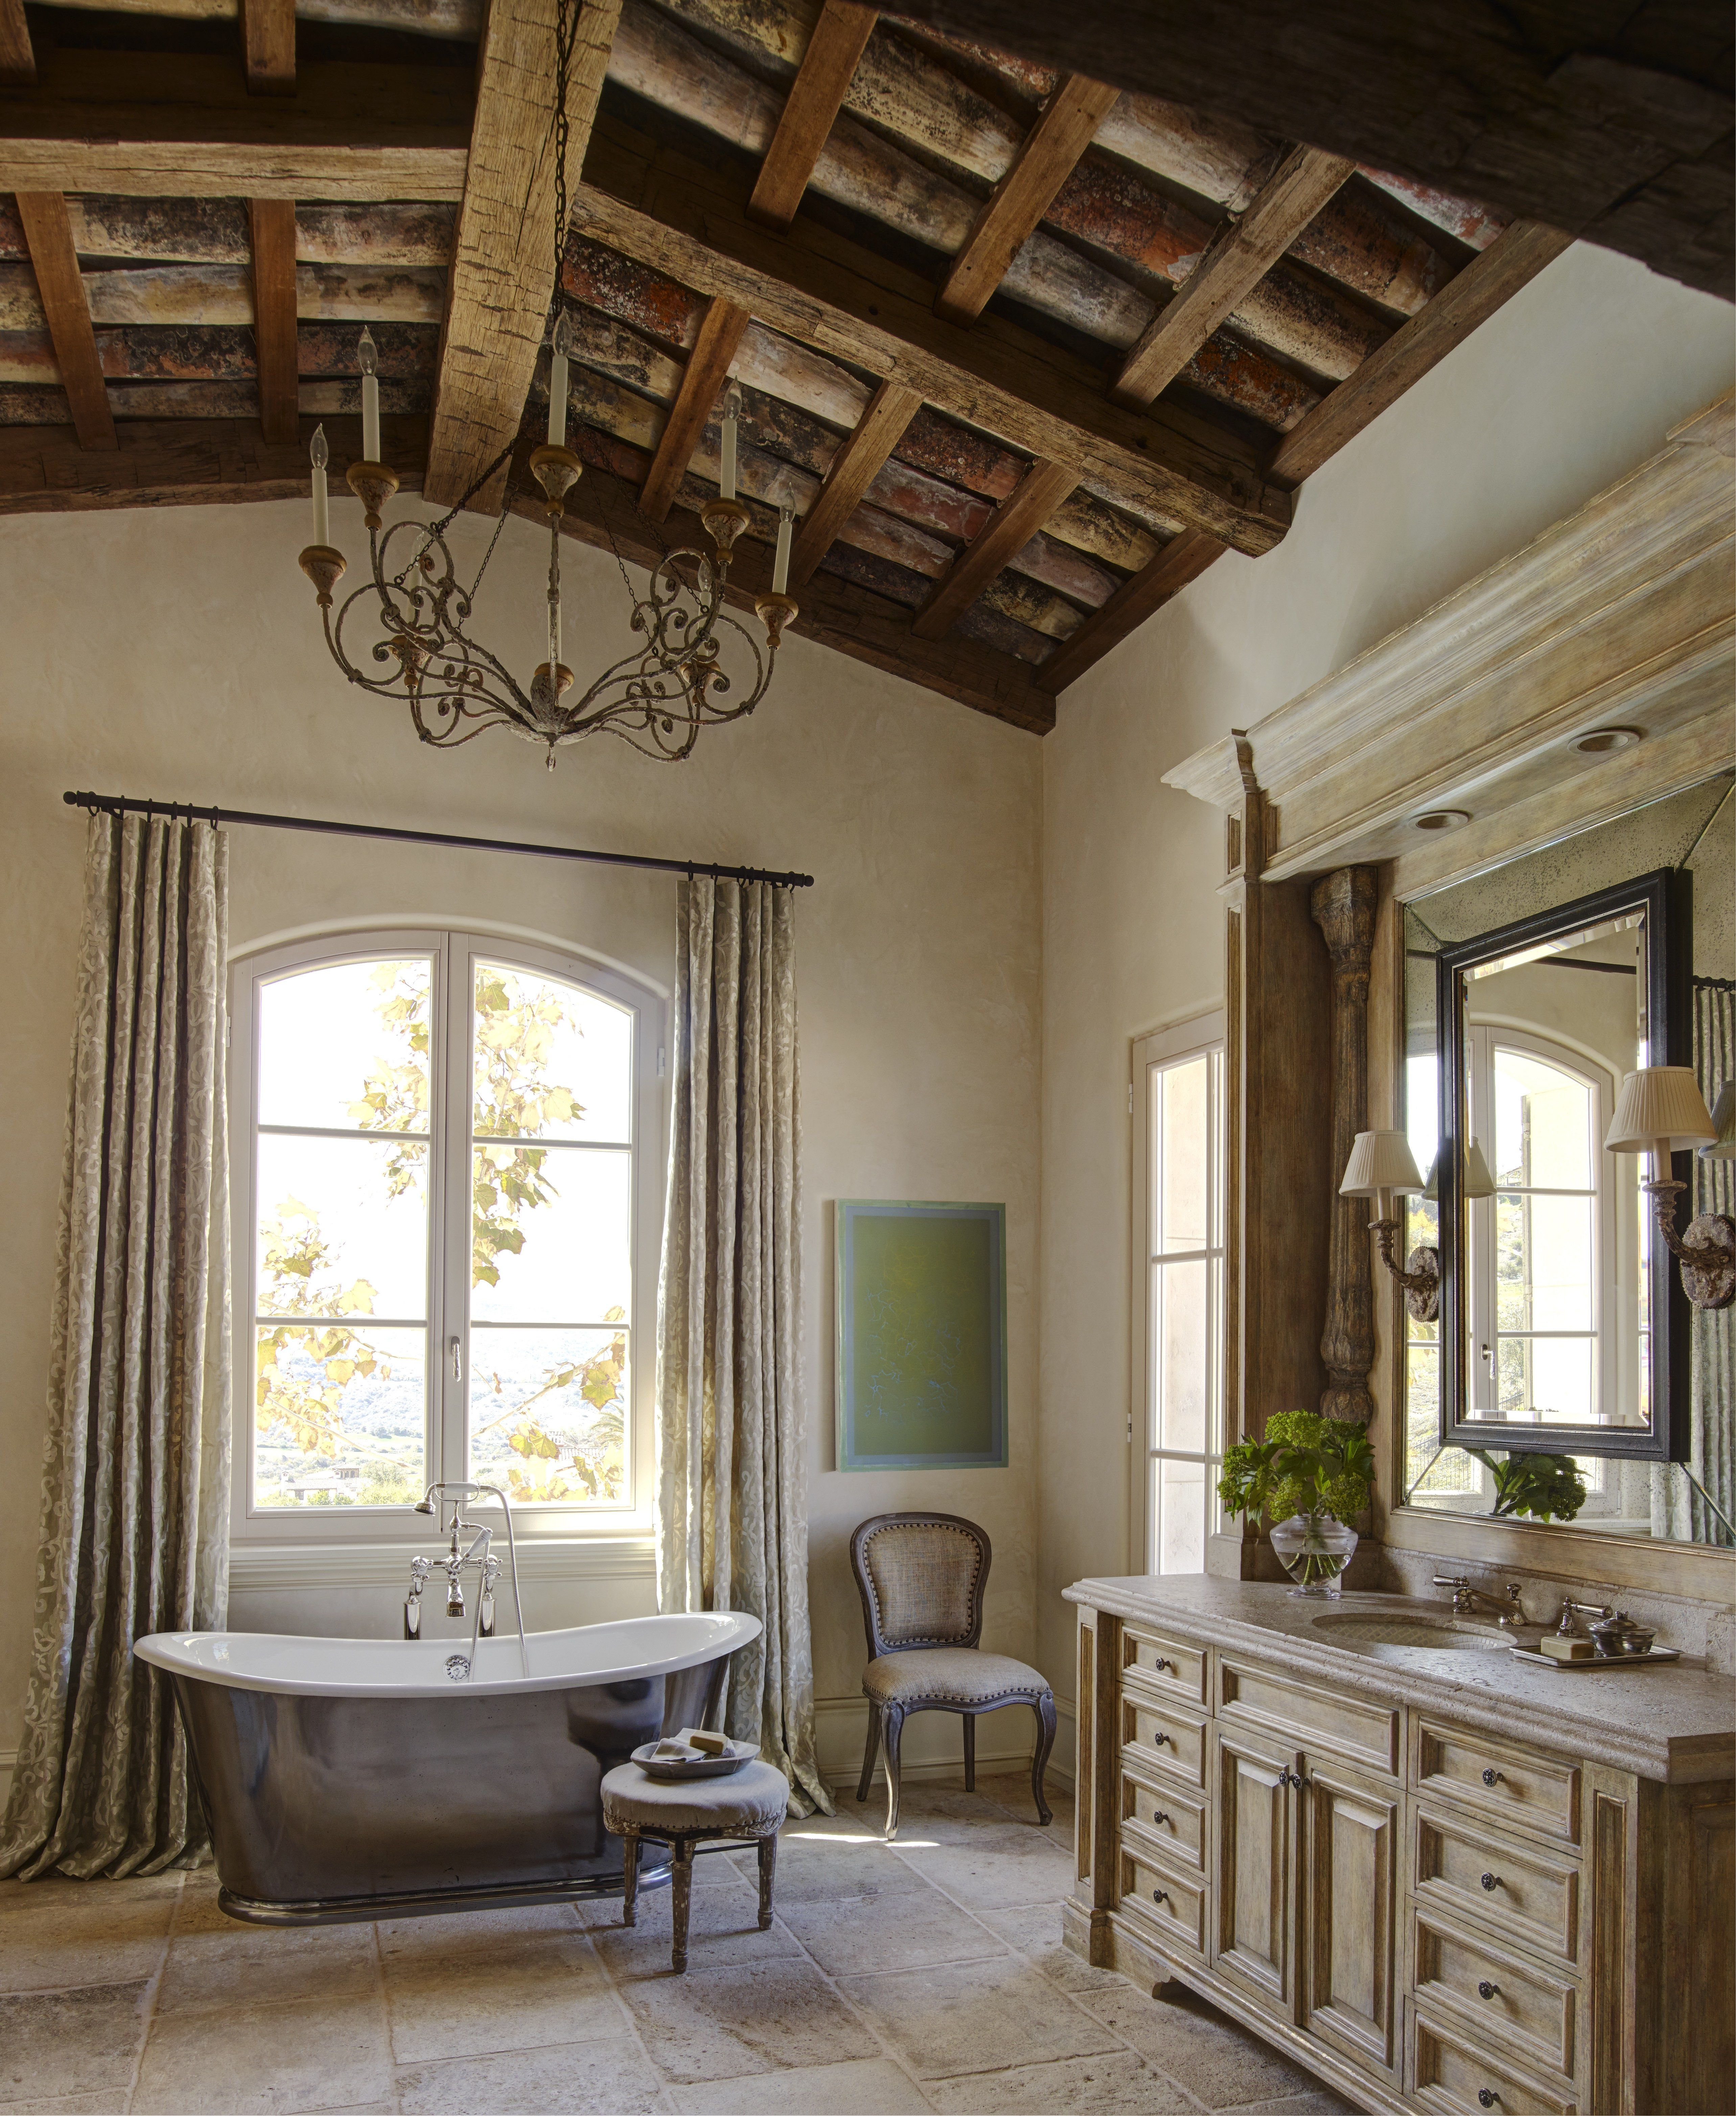 An Antique Style Bath Tub Meets Modern Amenities In This Classic French Provencal Bathroom Top Bathroom Design California Homes Provence Interior